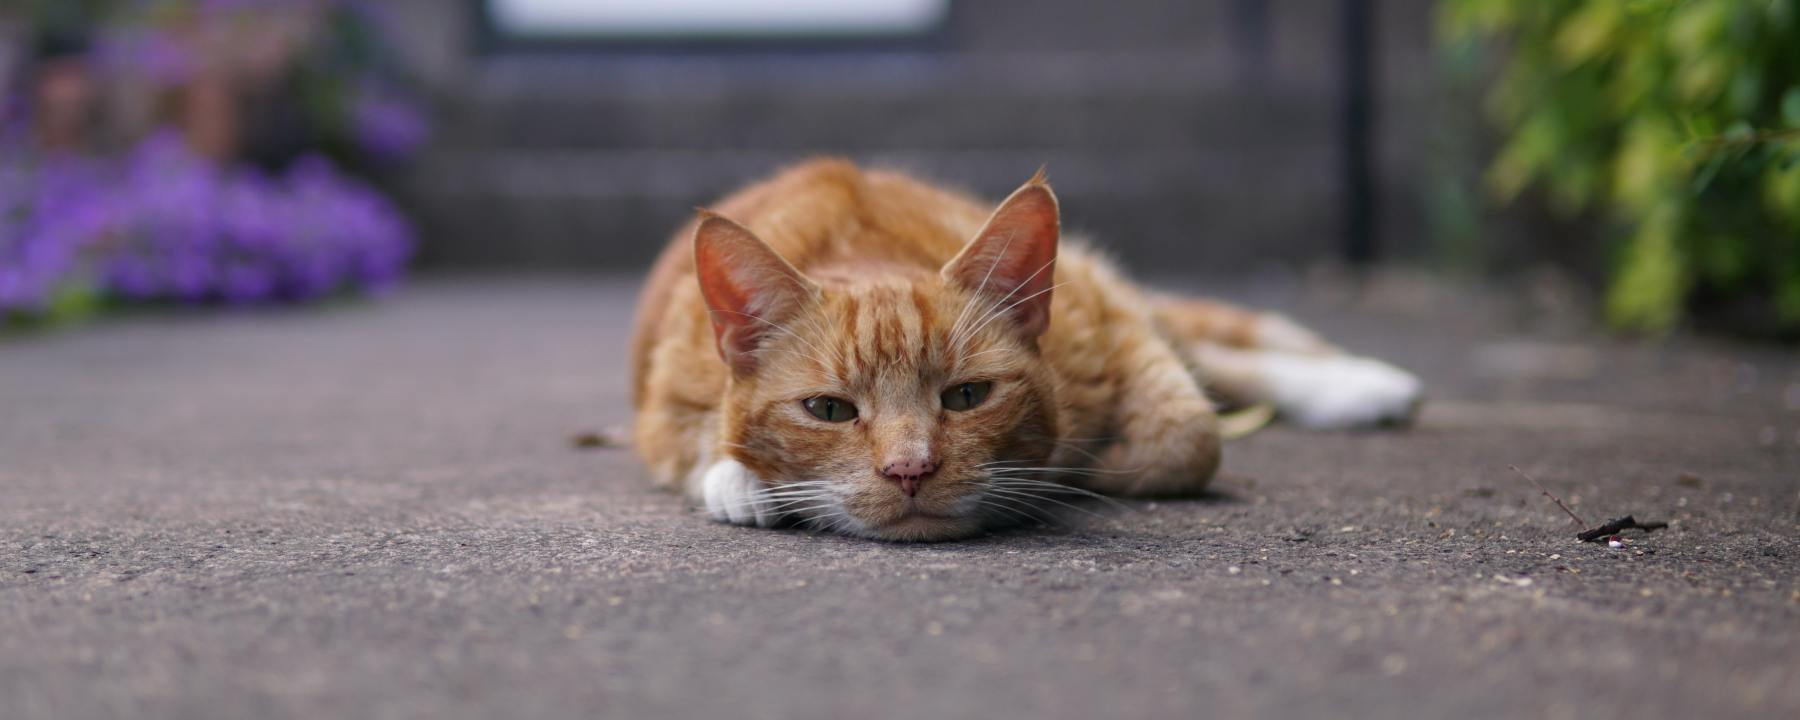 a lazy cat in the middle of a sidewalk